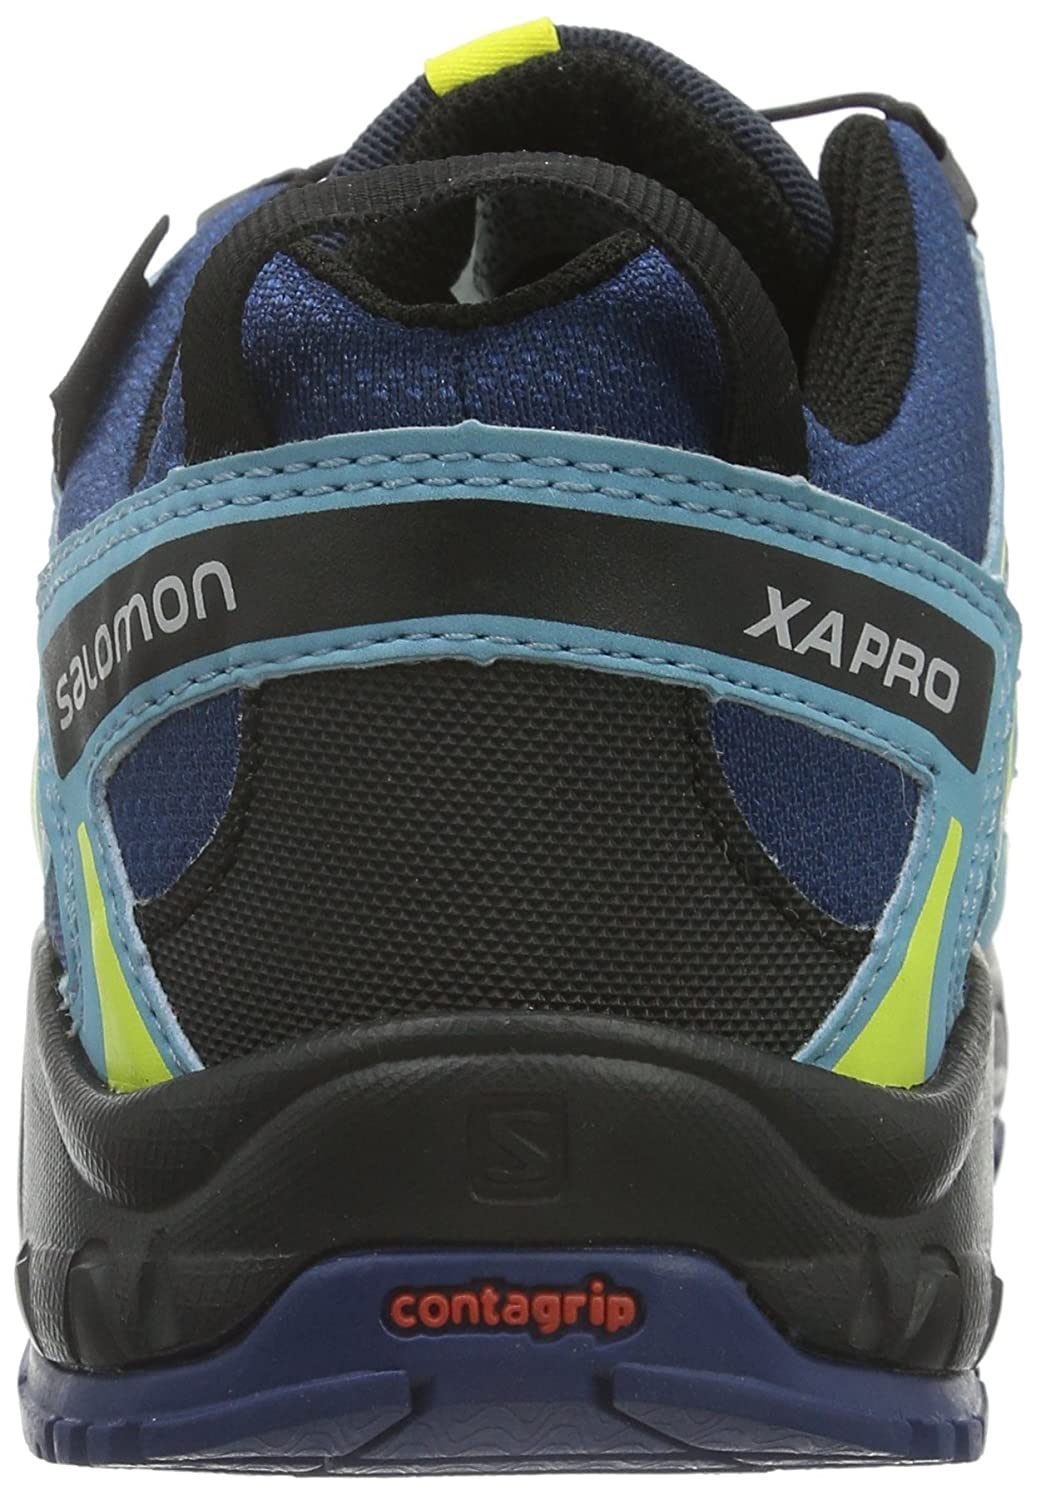 4d28f71bdf4f Salomon Kids Boy s Xa Pro 3D CSWP (Toddler Little Kid) Midnight Blue Blue  Gum Corona Yellow Sneaker 9 Toddler M  Buy Online at Low Prices in India -  Amazon. ...